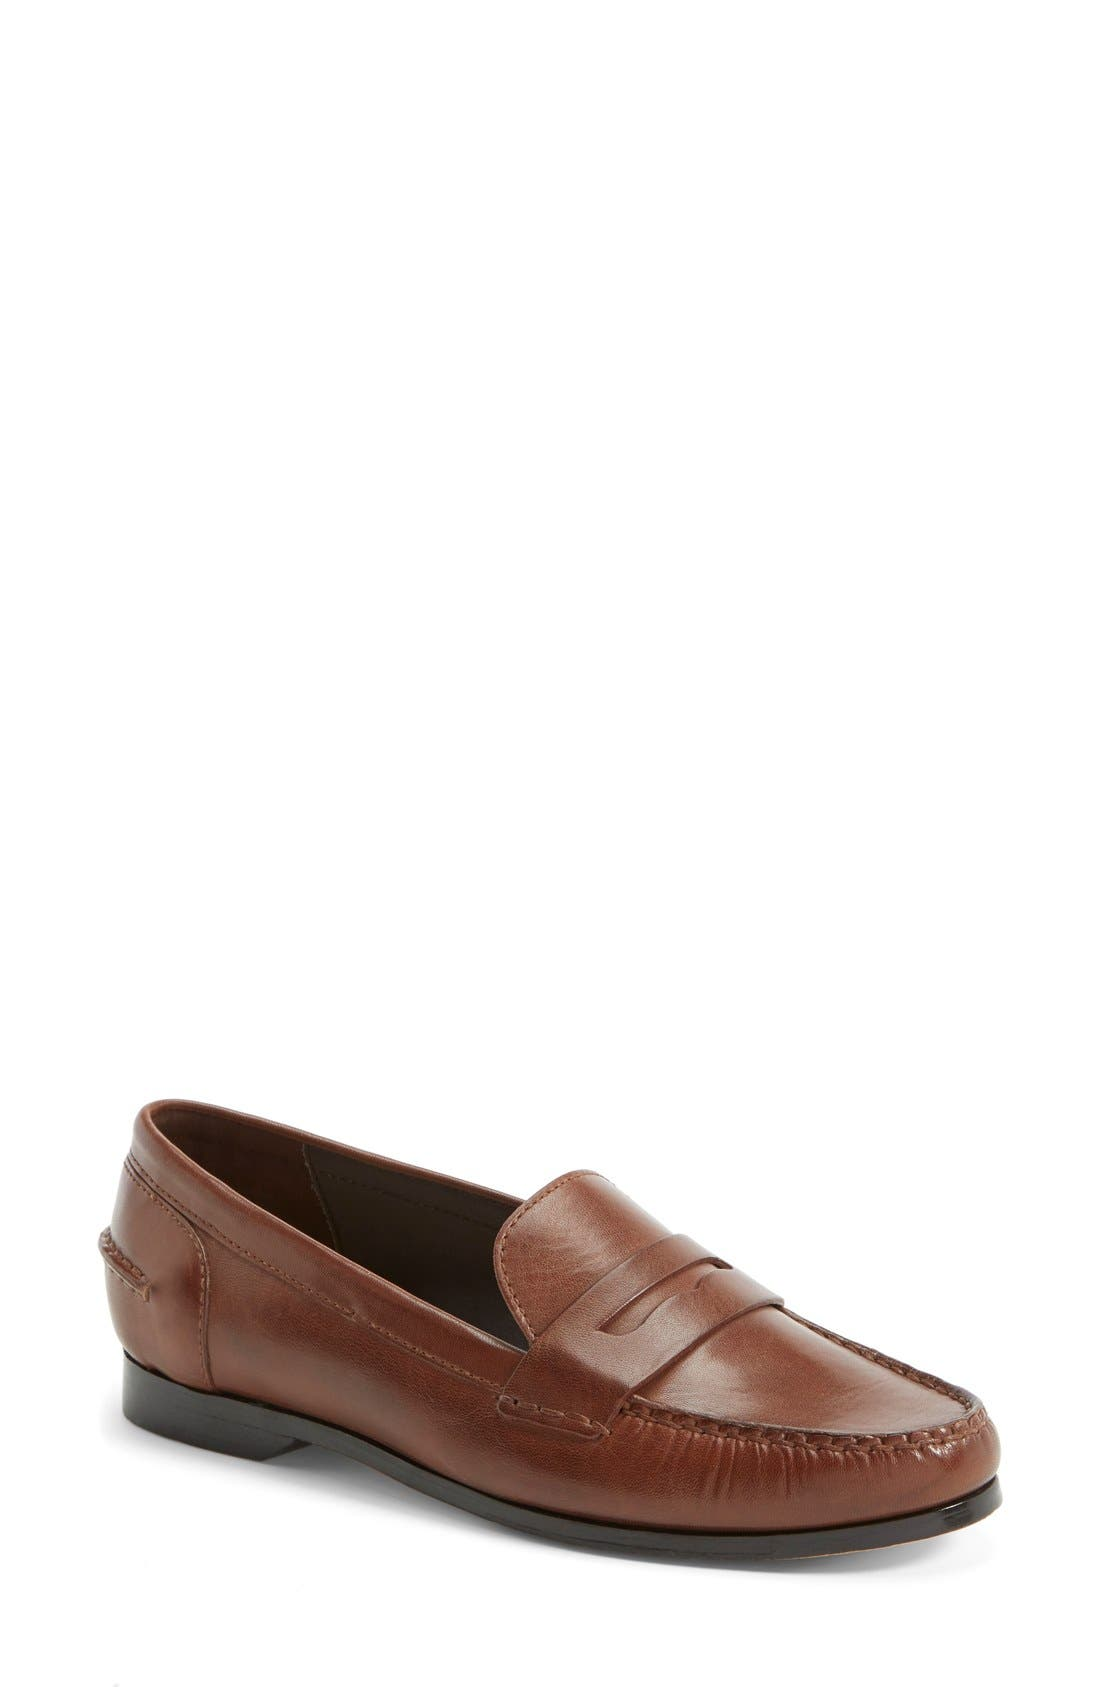 Cole Haan | 'Pinch Grand' Penny Loafer